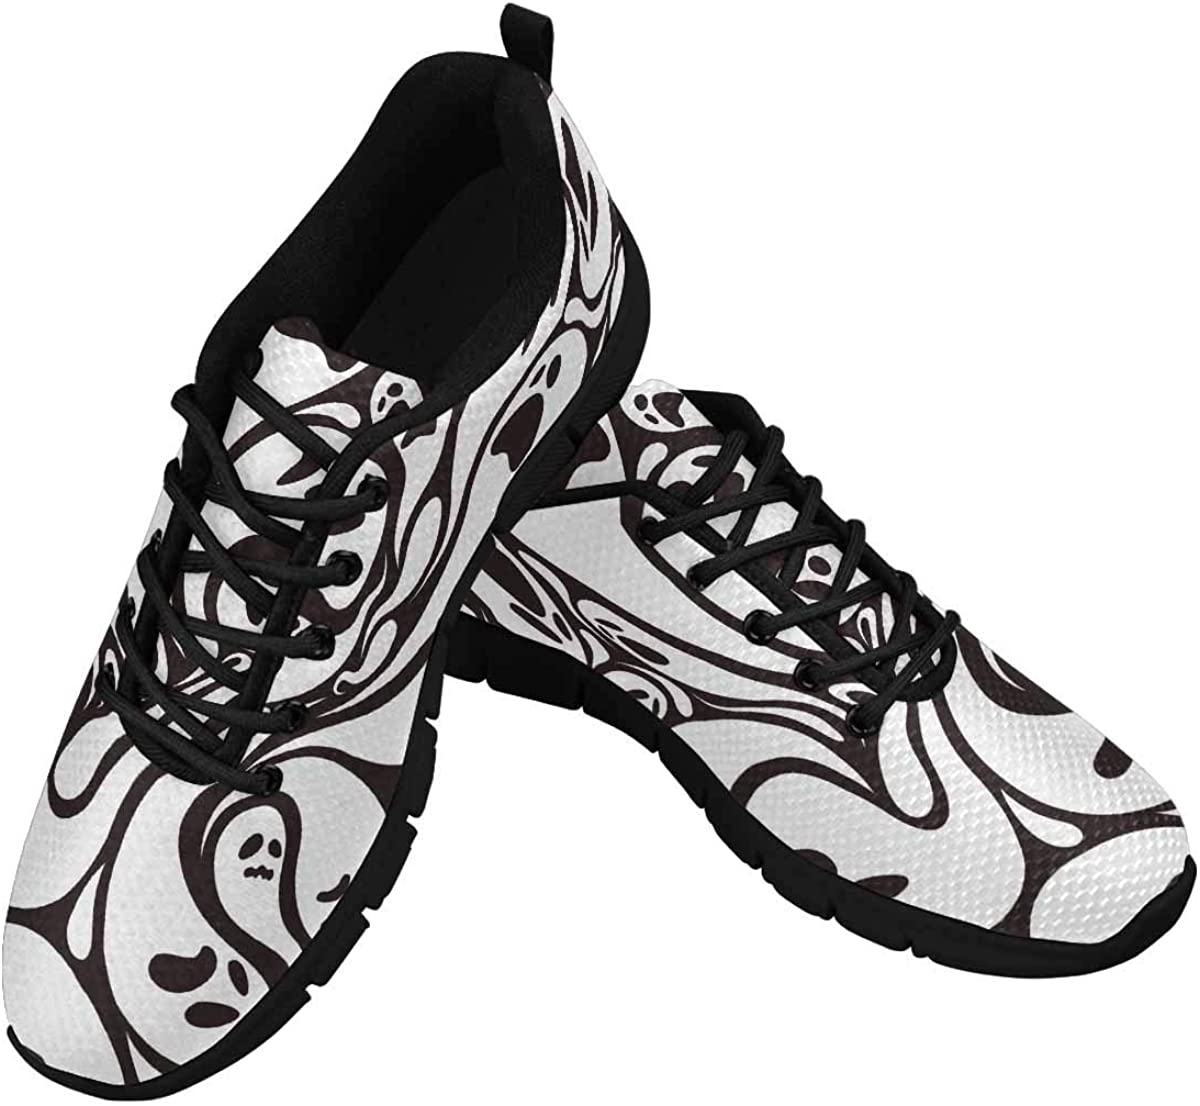 INTERESTPRINT Ghost Pattern in Black and White Women's Athletic Walking Running Sneakers Comfortable Lightweight Shoes